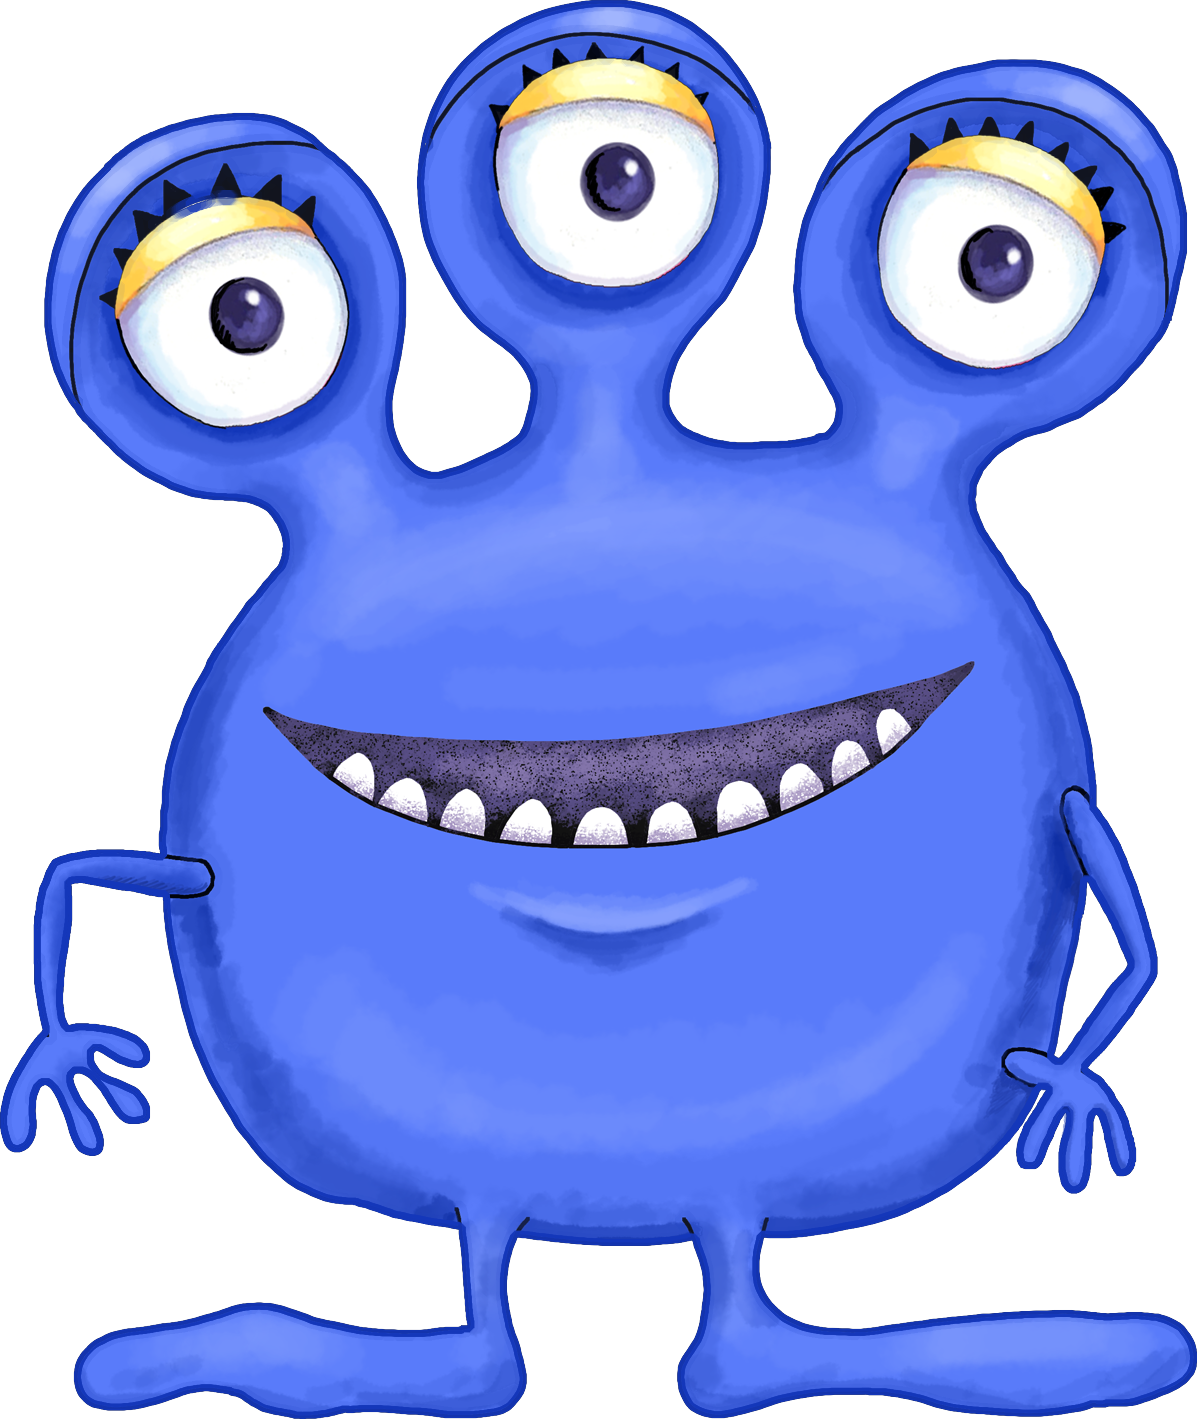 3 eyed monster holding a heart clipart.